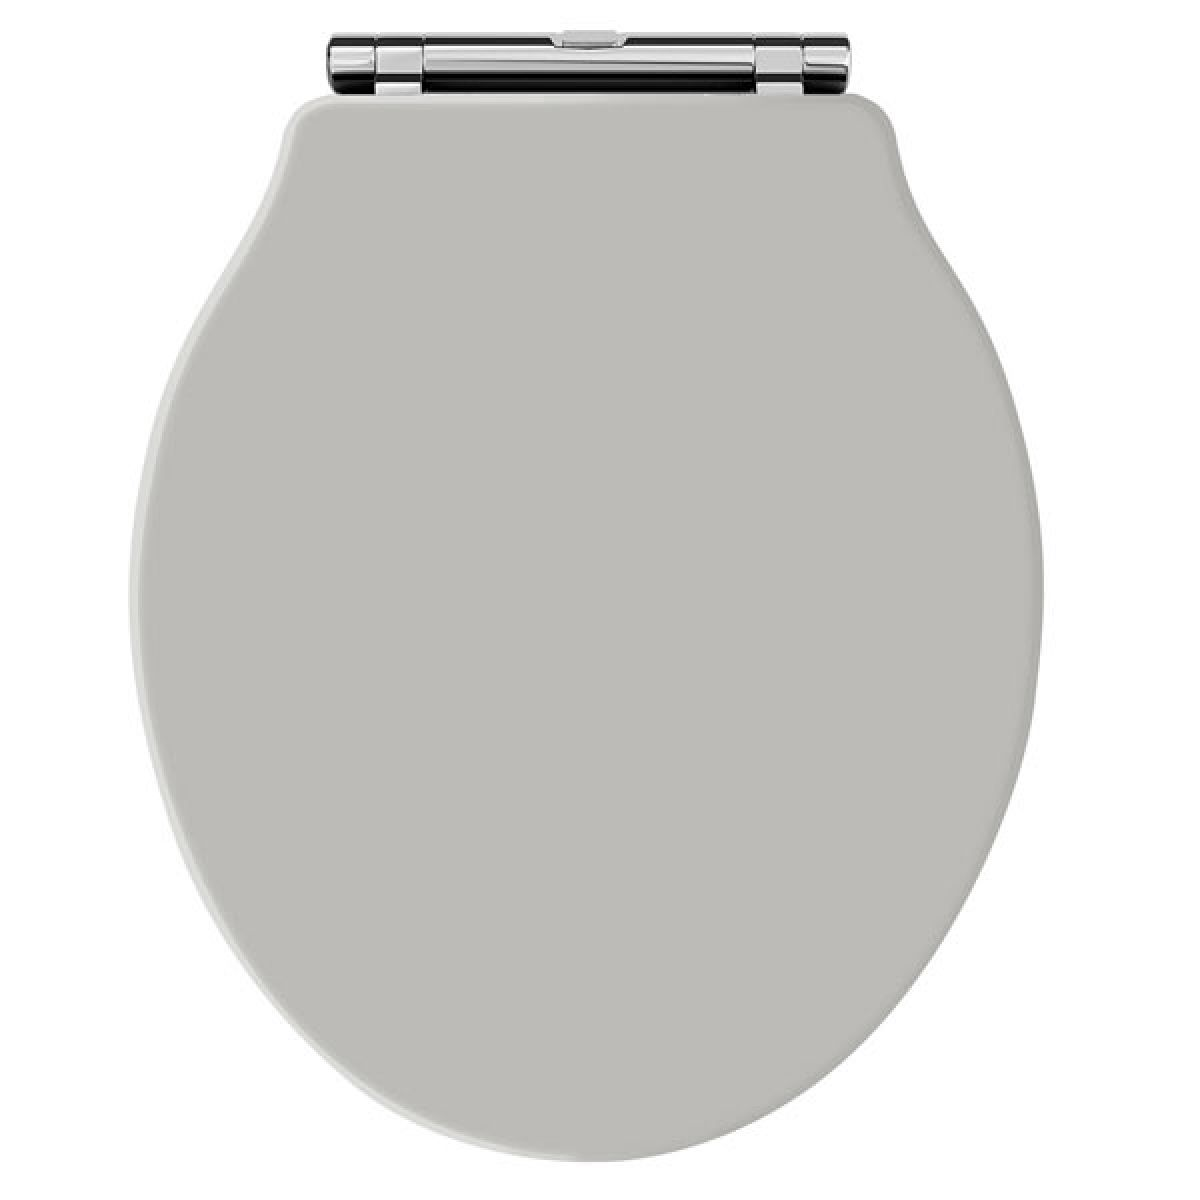 Premier Ryther Stone Grey Wooden Toilet Seat